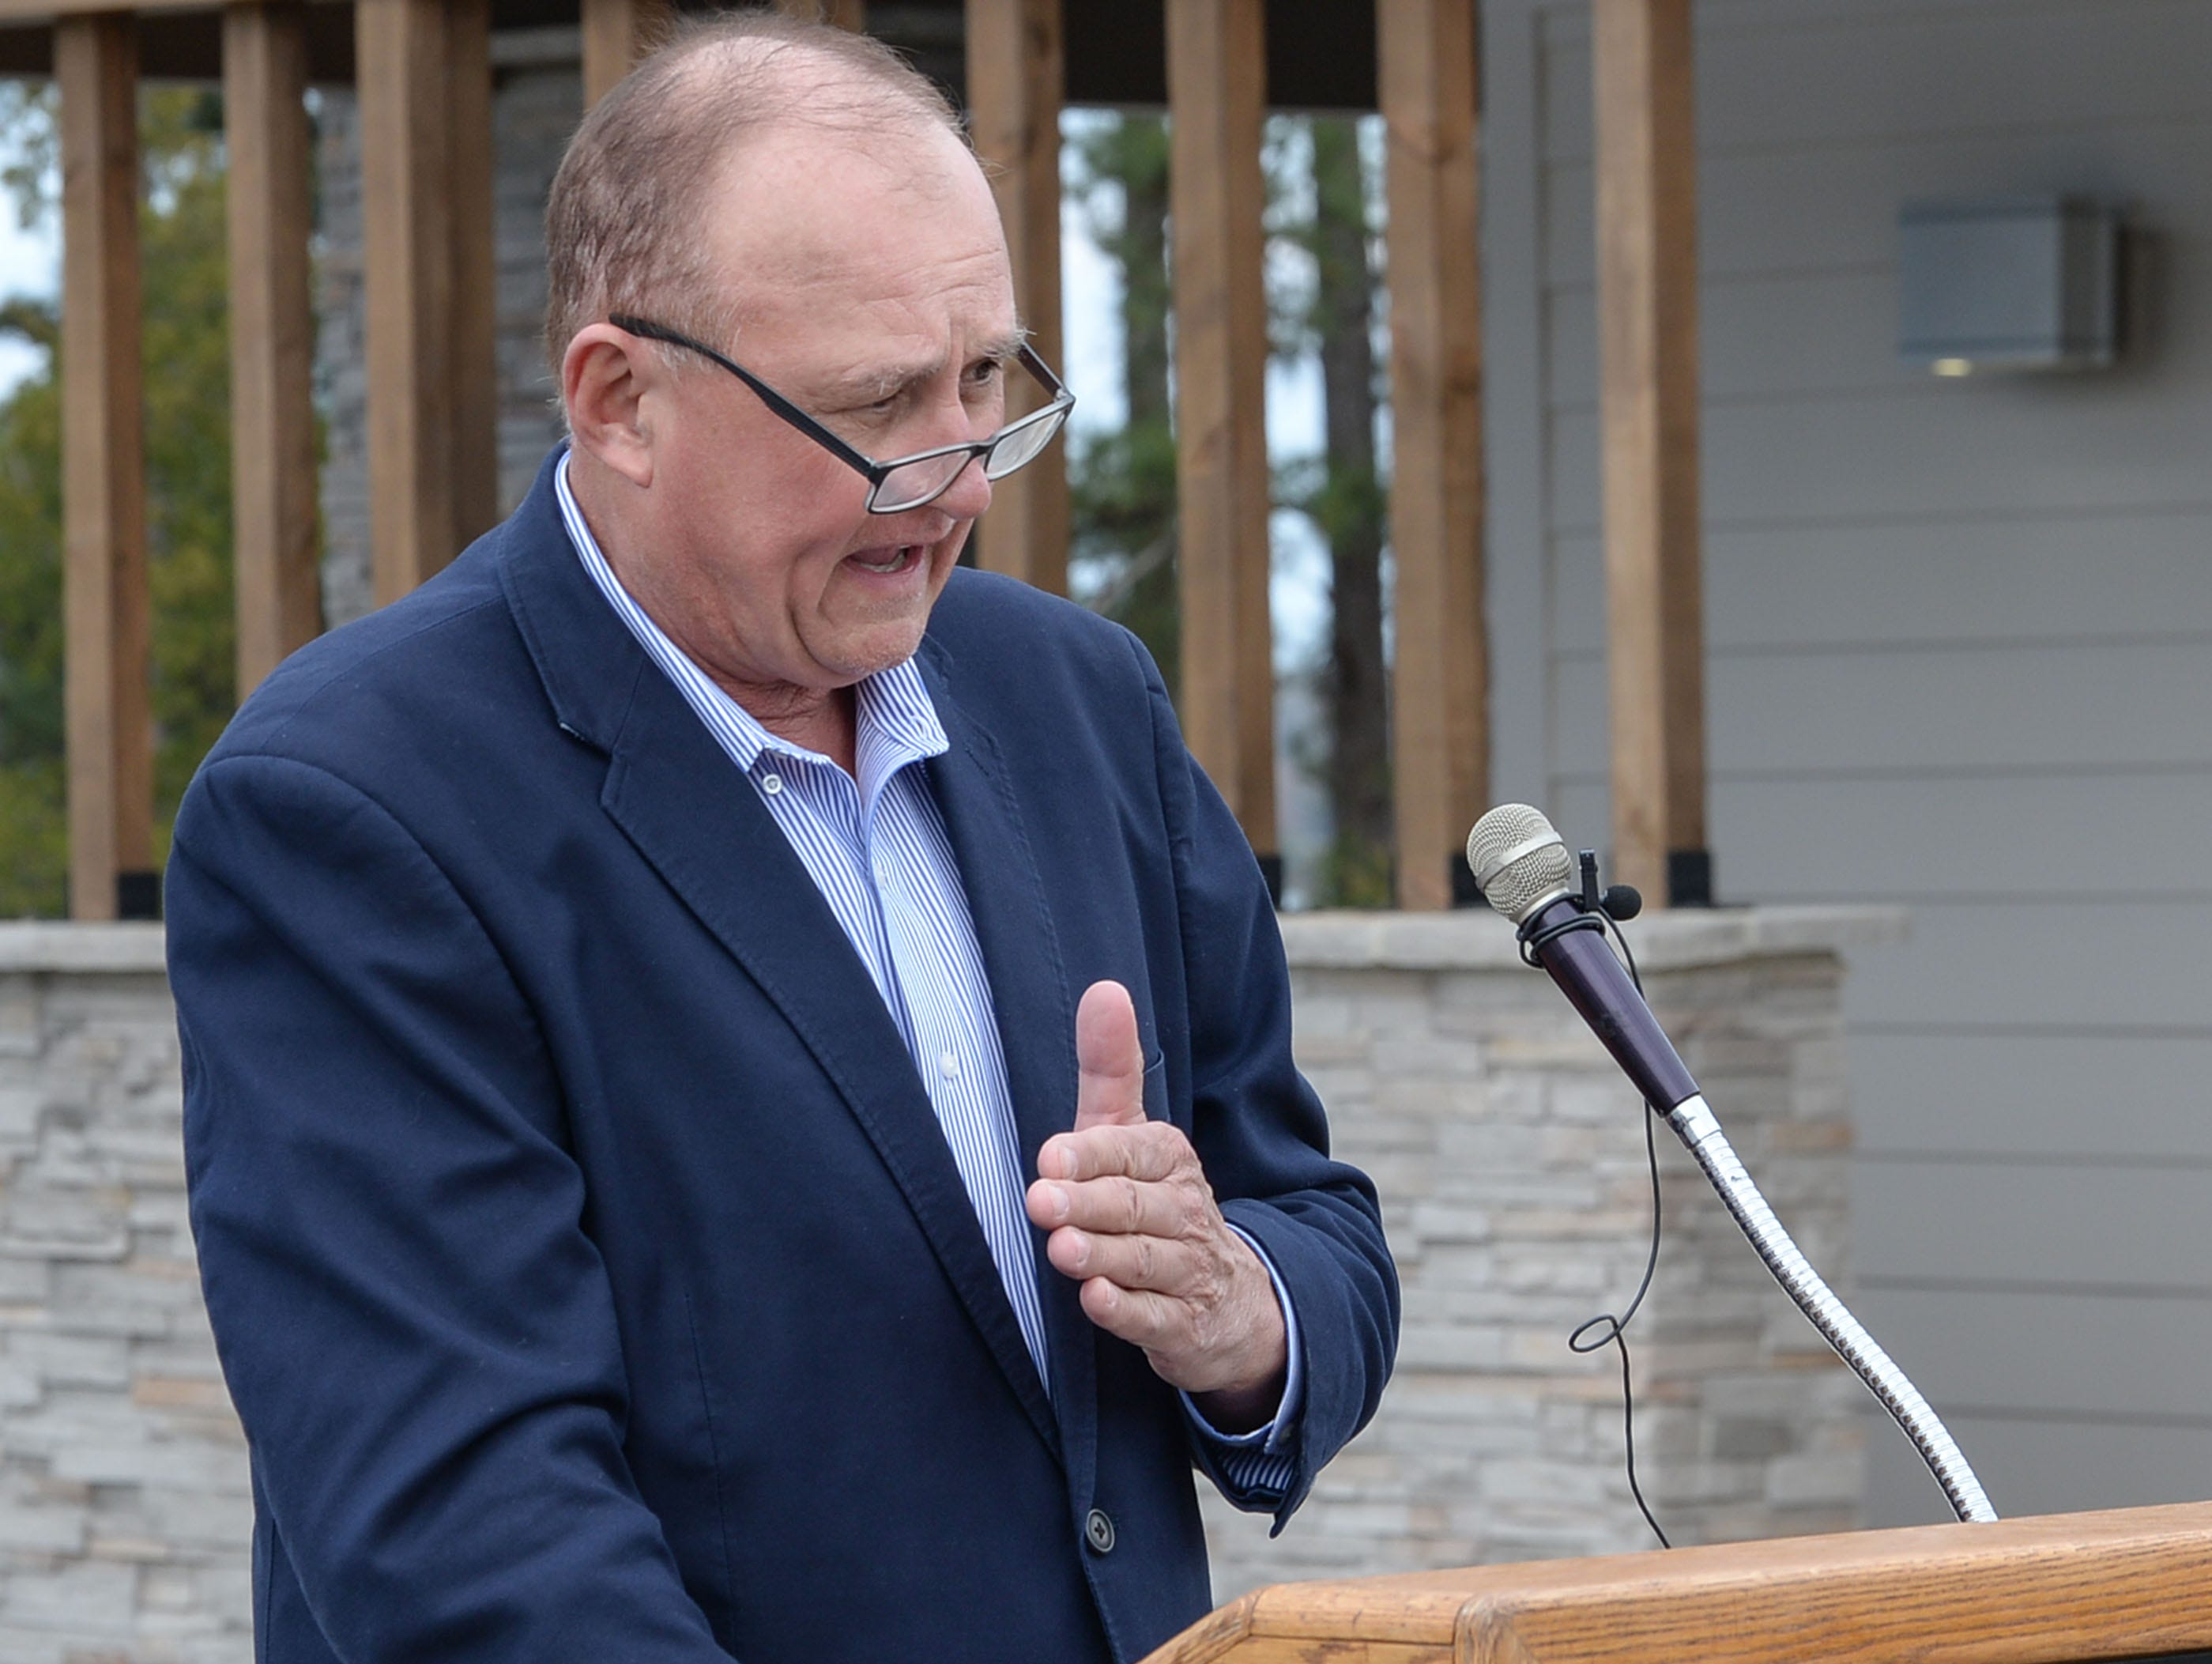 Chairman Tommy Dunn, Anderson County Council, speaks during the Green Pond Landing & Event Center Facilities ribbon cutting event in Anderson Tuesday.